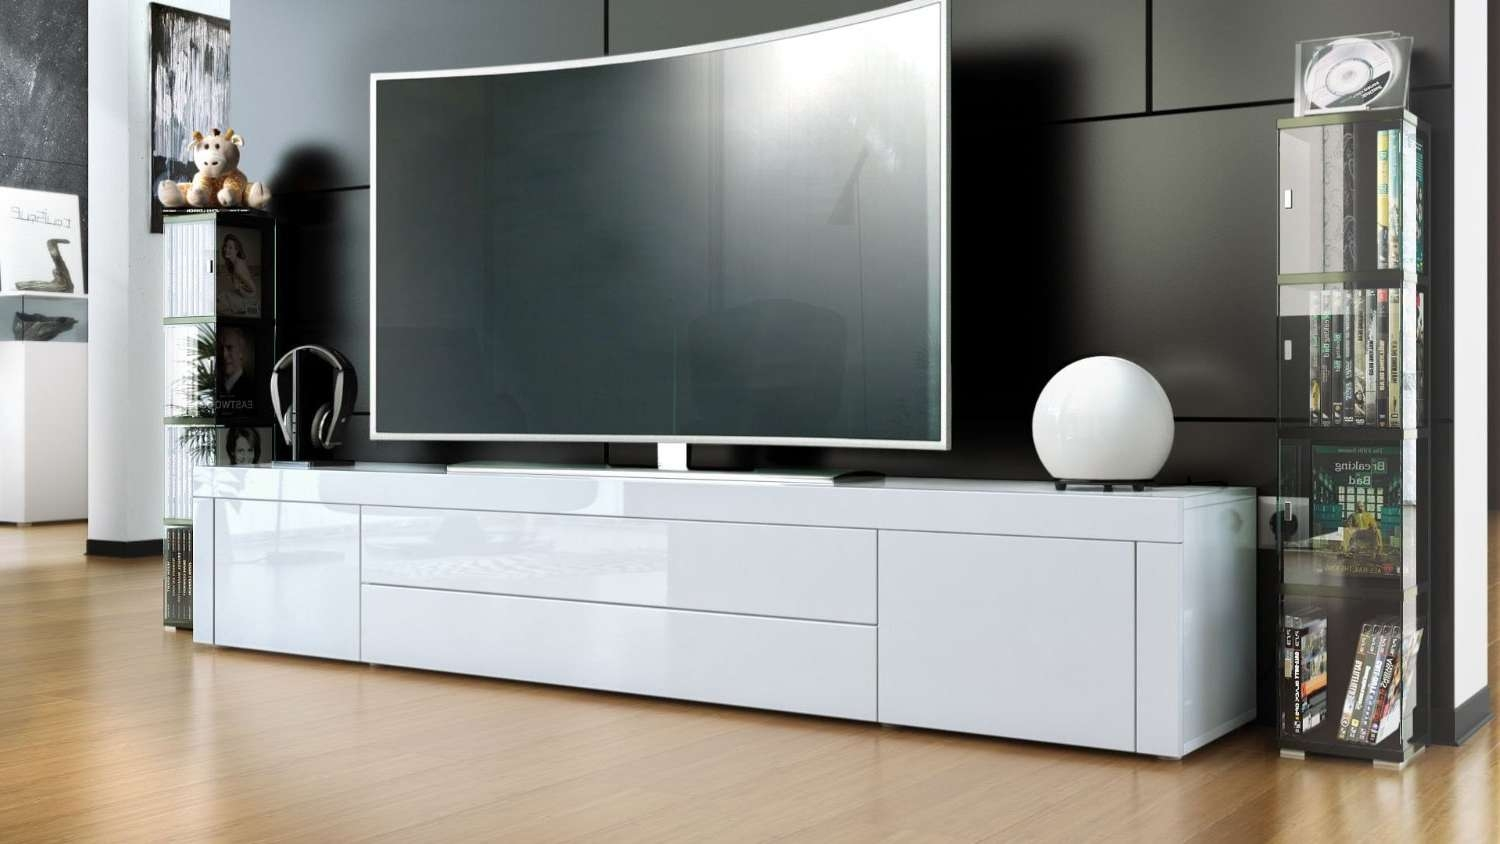 White Modern Tv Stand.tv Stand Quick View (View 15 of 15)